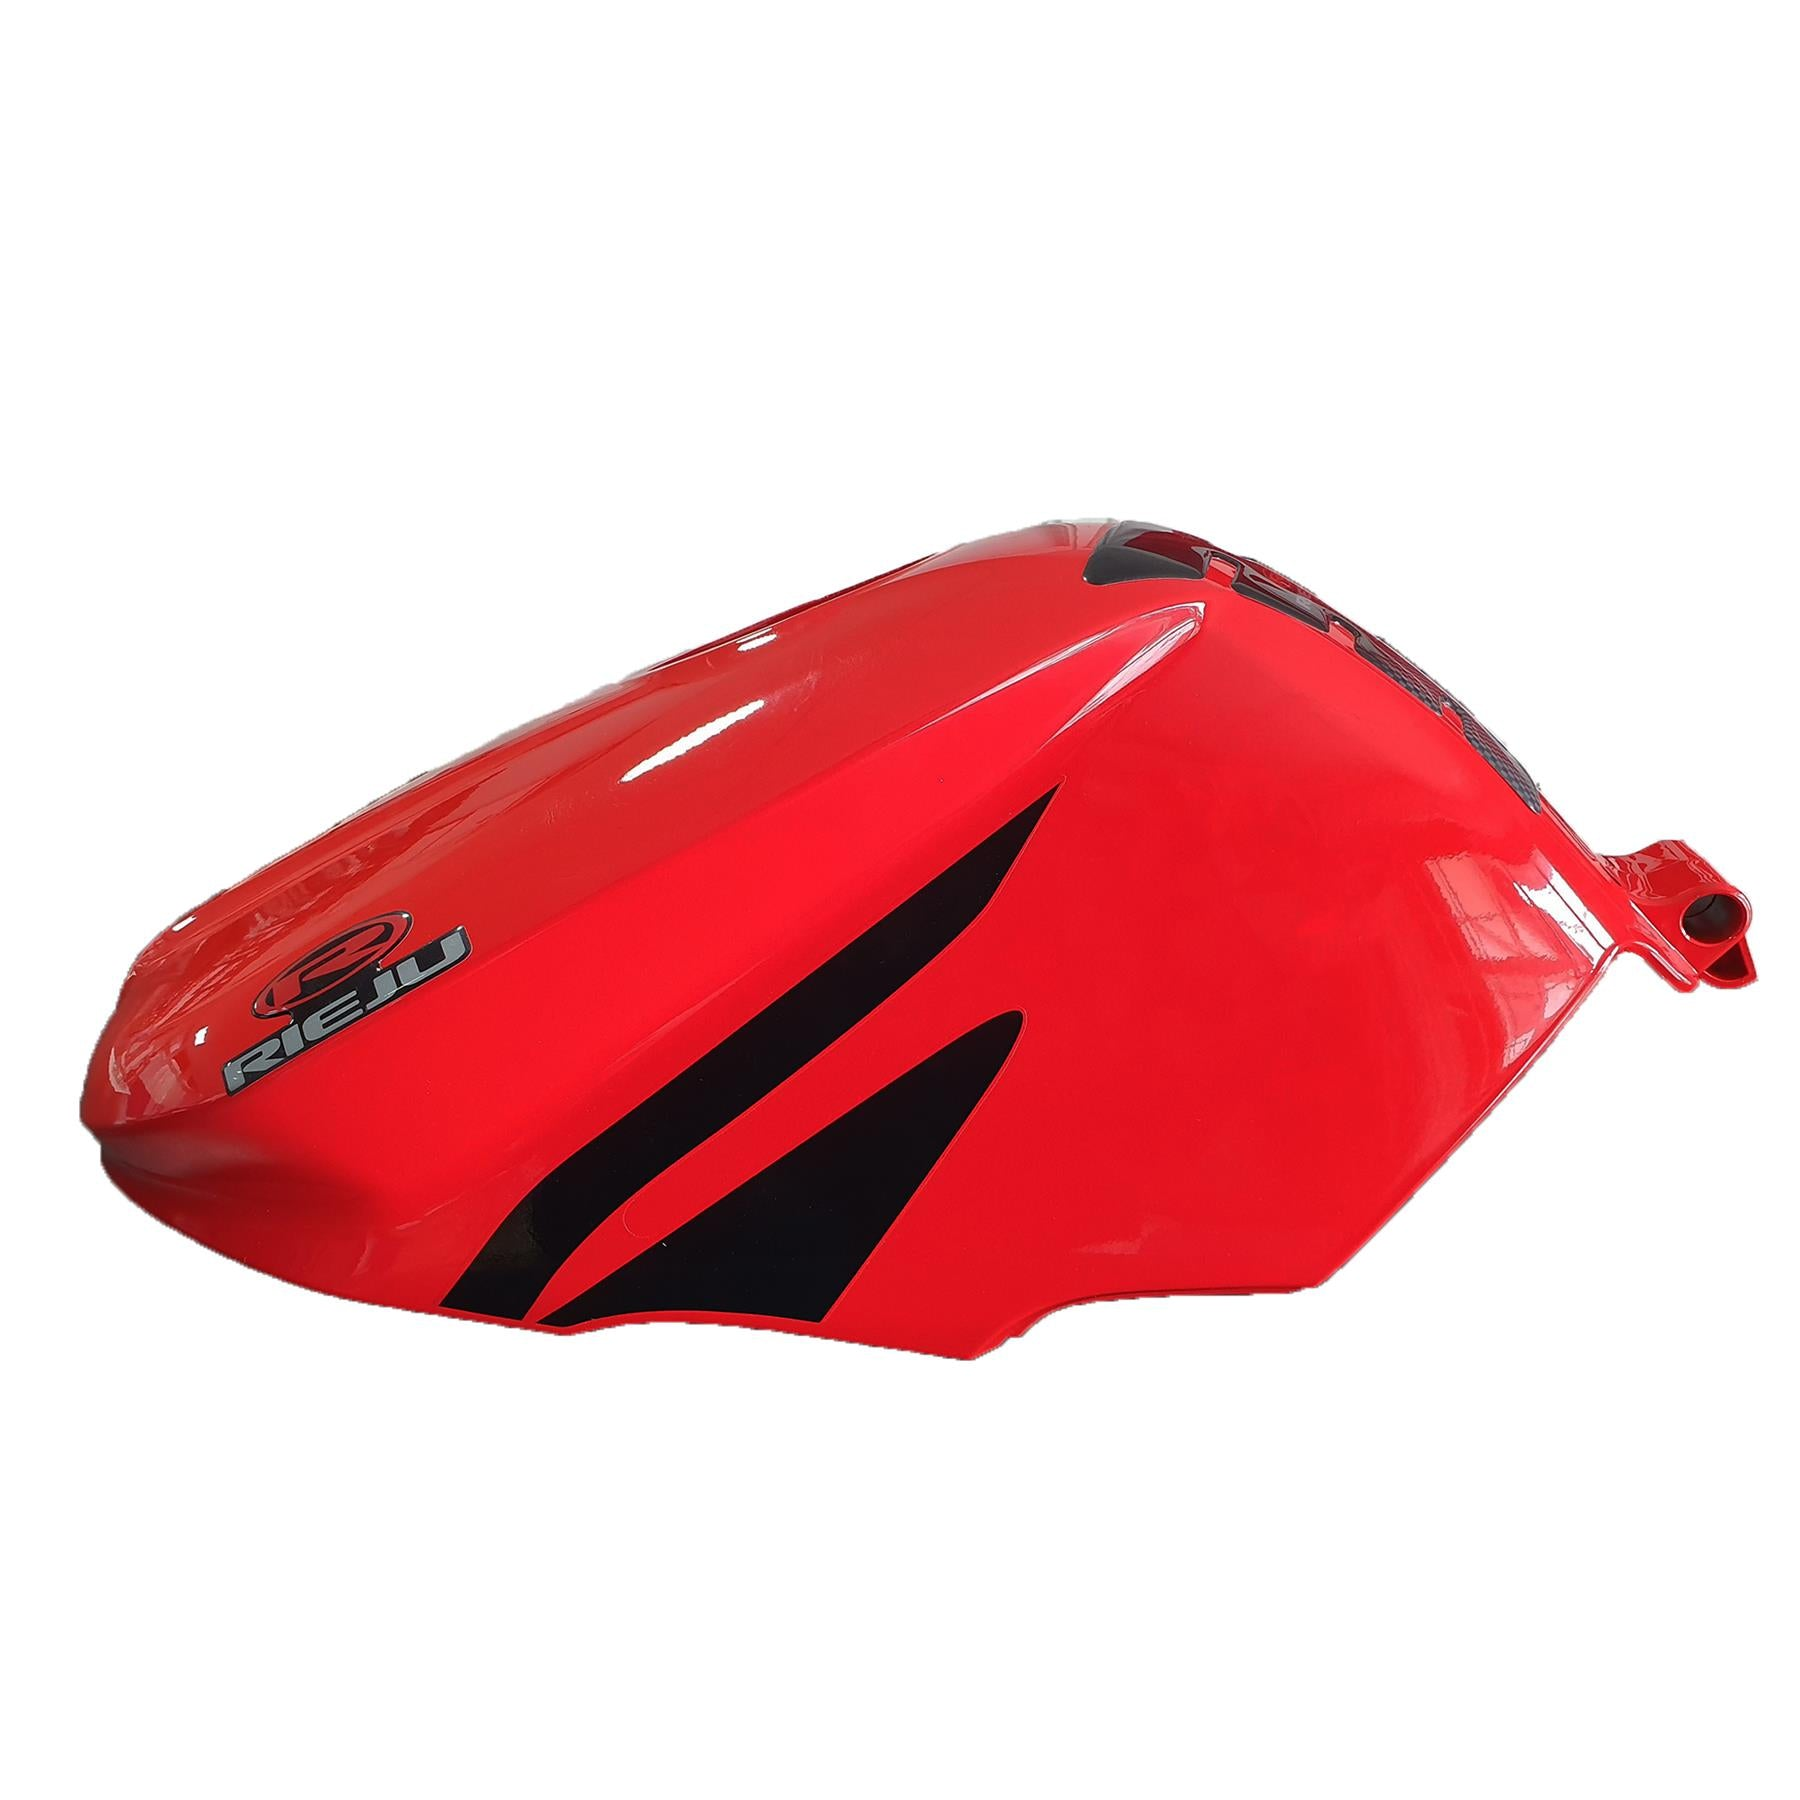 Rieju RS2 125 Matrix Red Fuel Tank Cover NOS £20